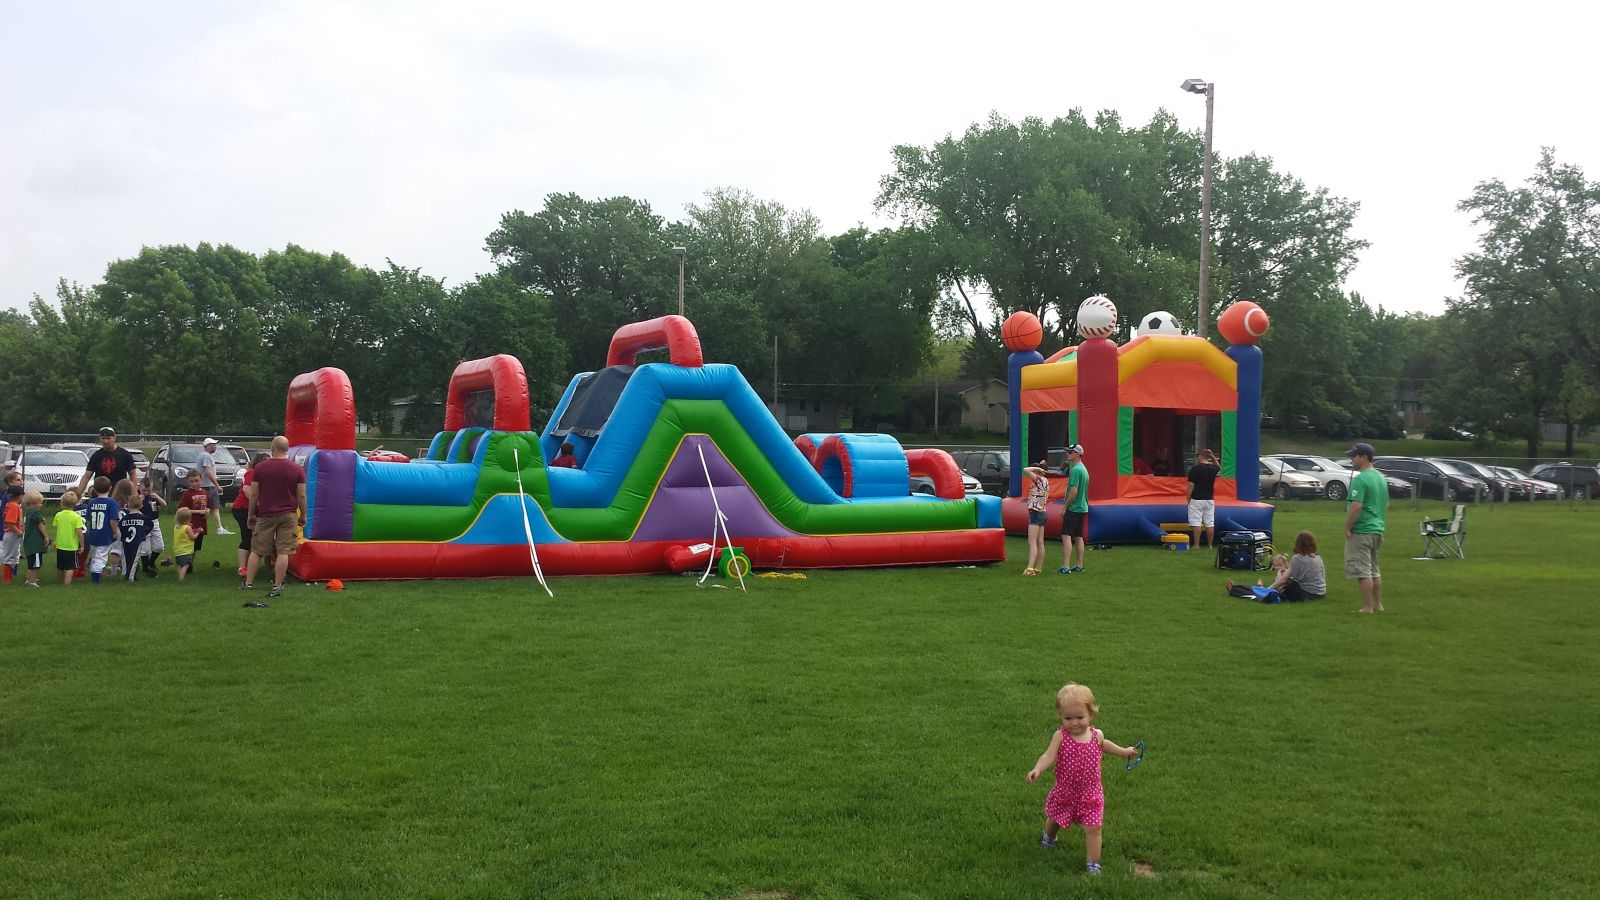 Wacky 7 Element Obstacle Course and Sports Bounce House at baseball event.